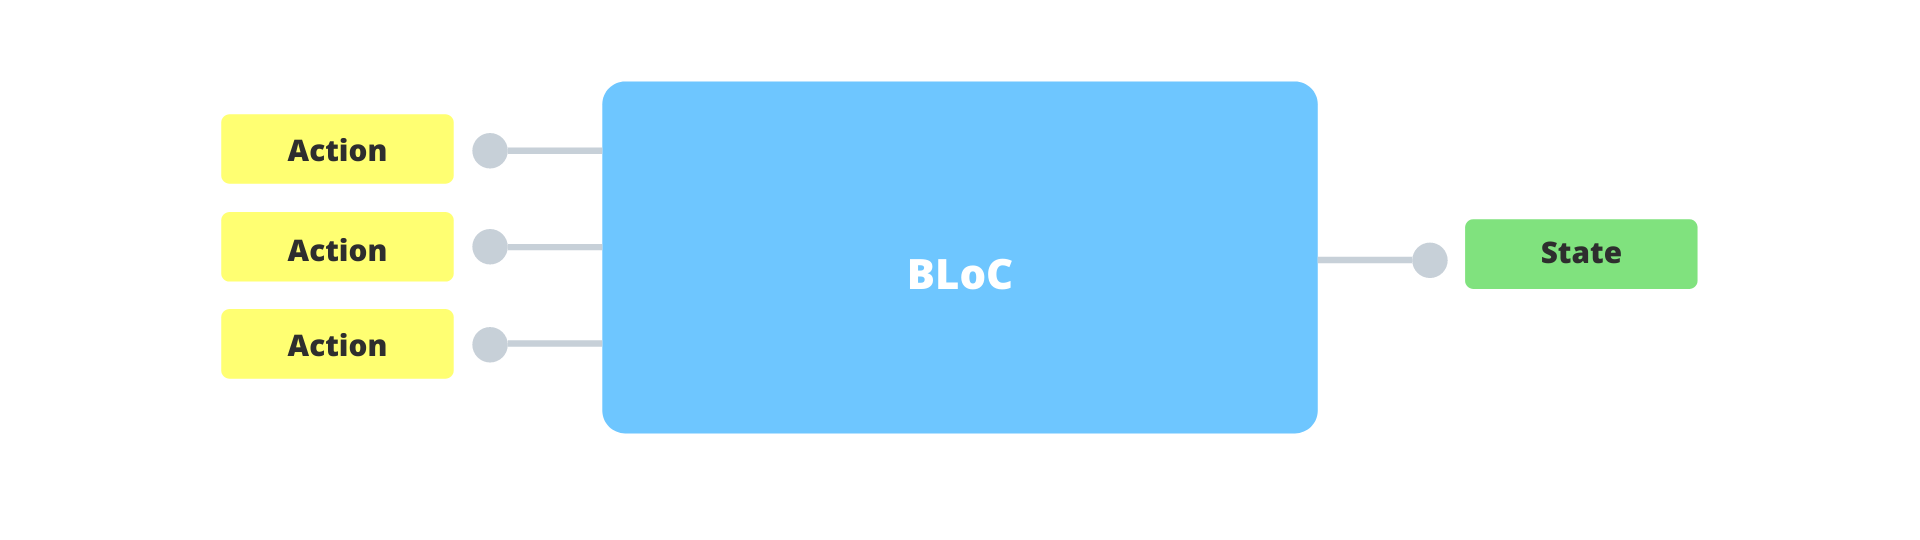 bloc-many-inputs-one-output